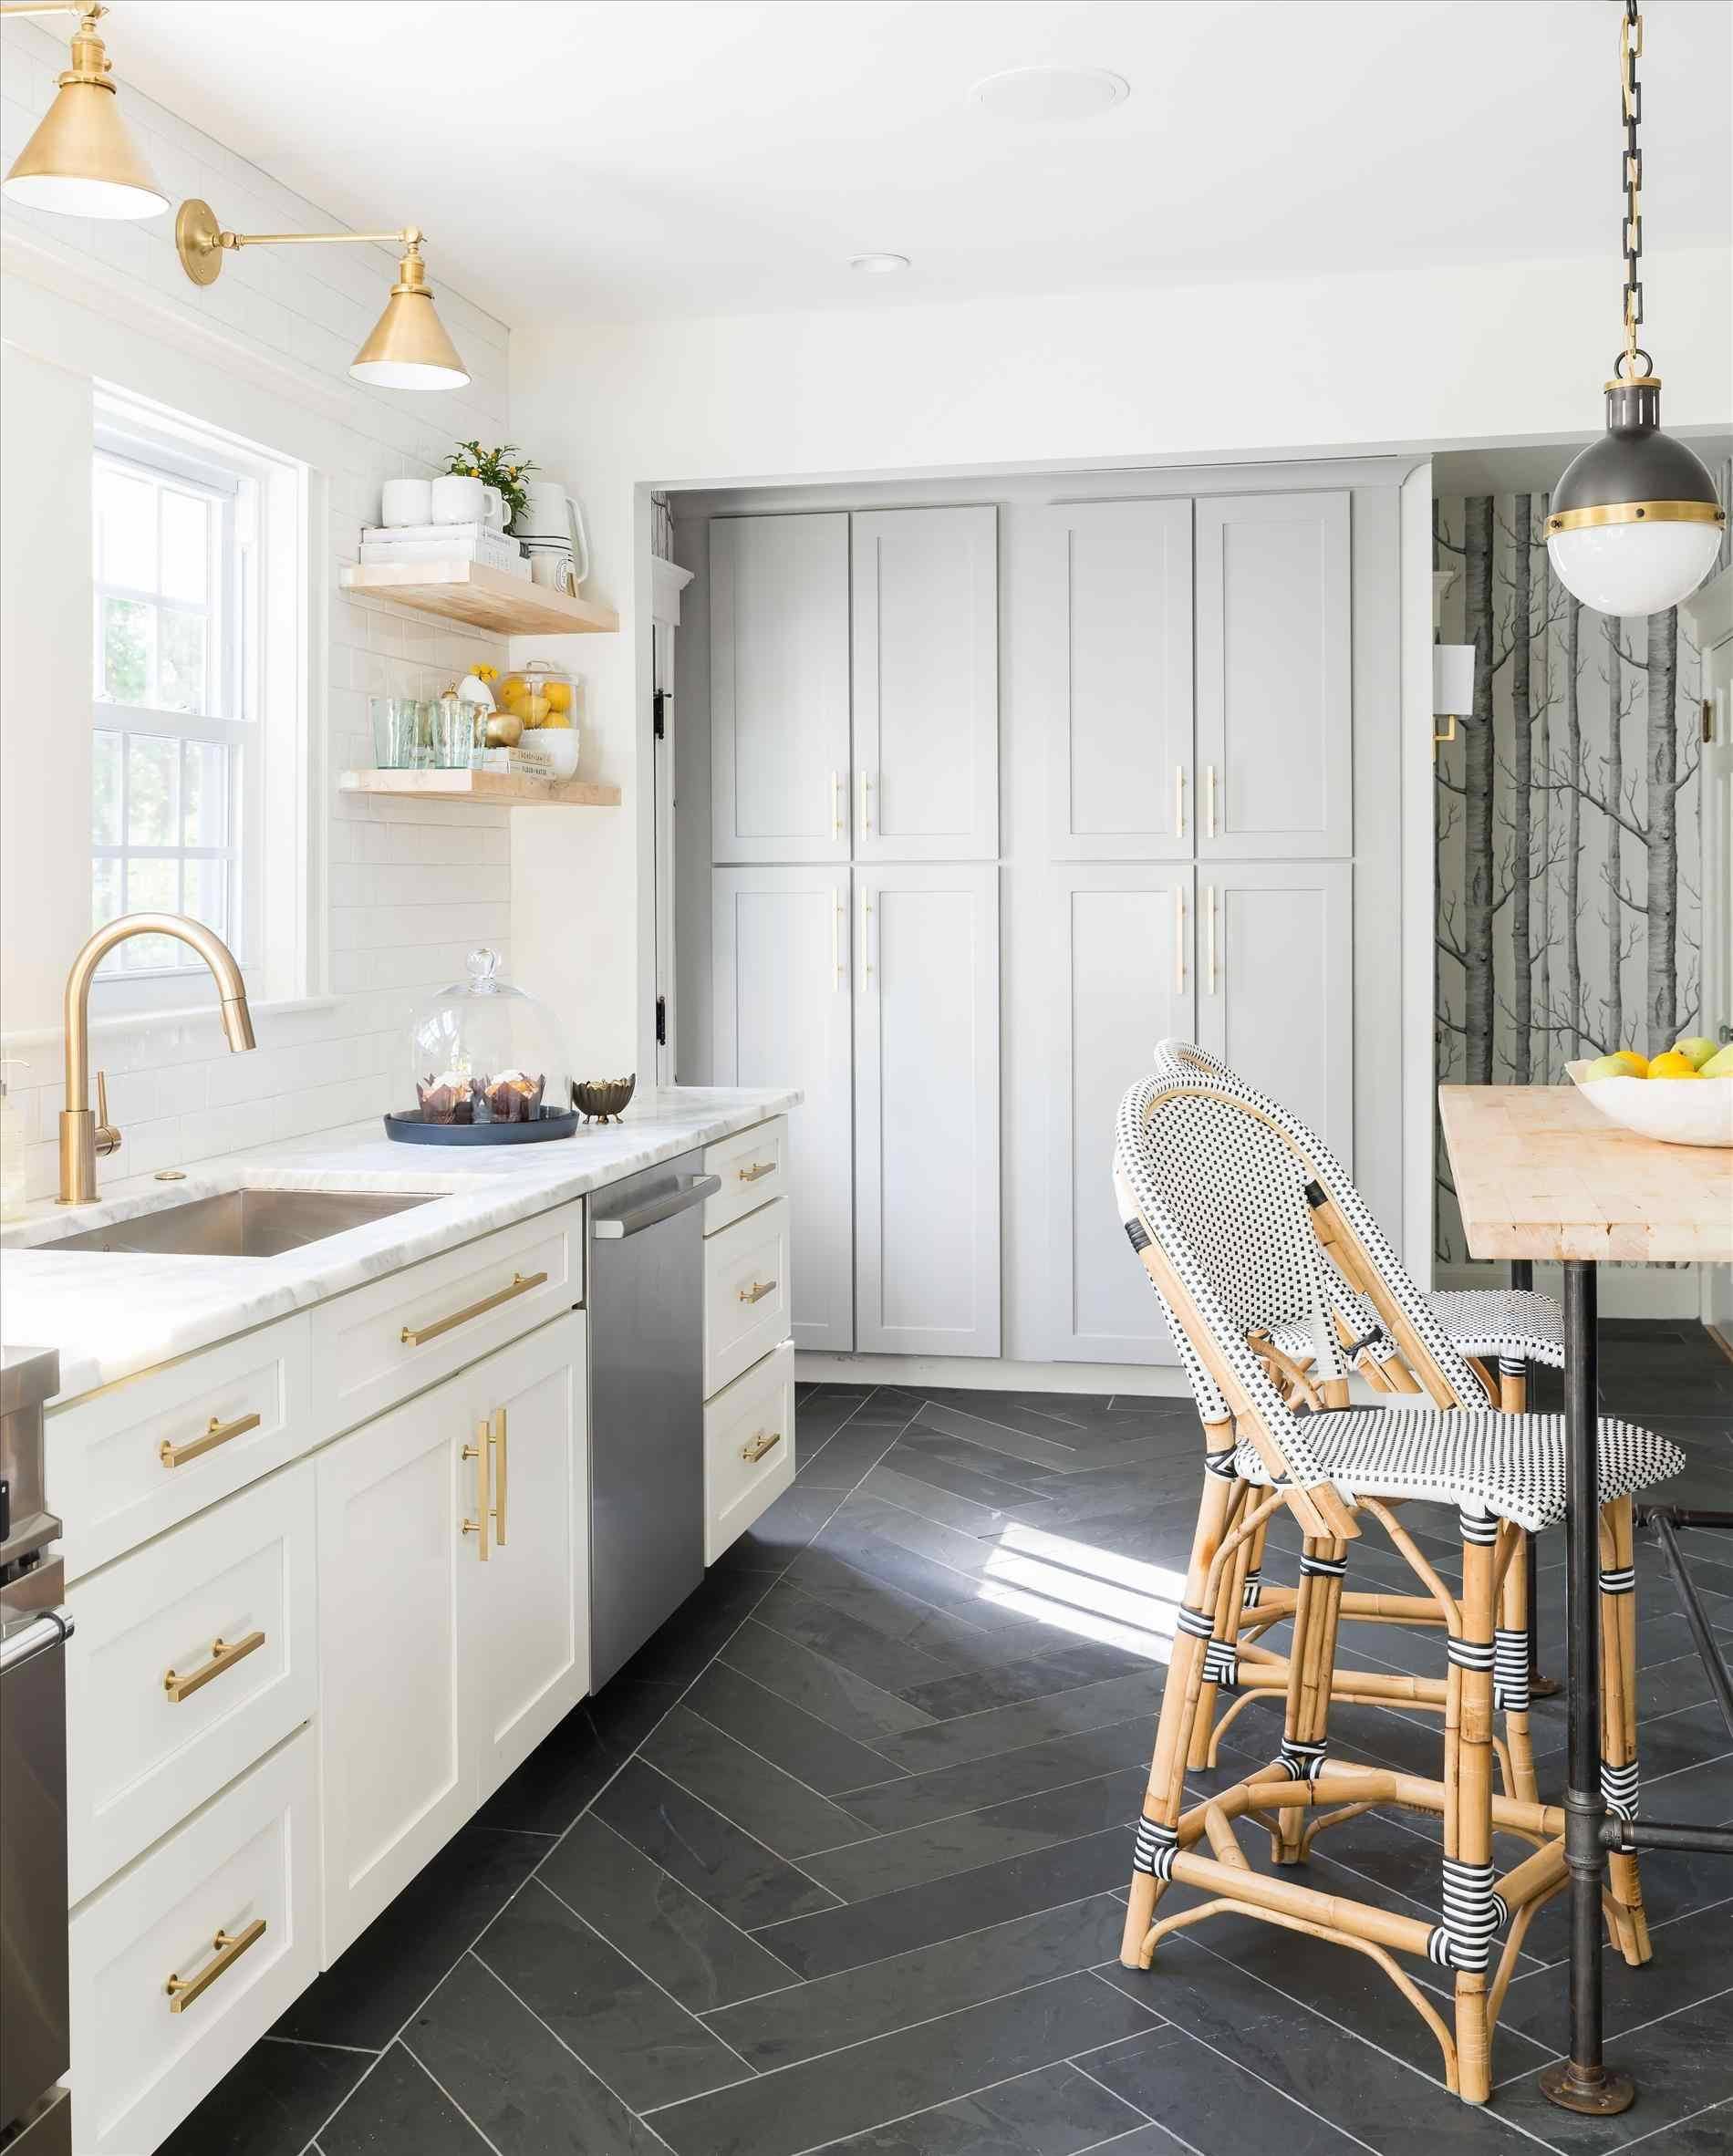 black and white kitchens with a splash of colour ... image of black and white kitchens with a splash of PDVWJSO